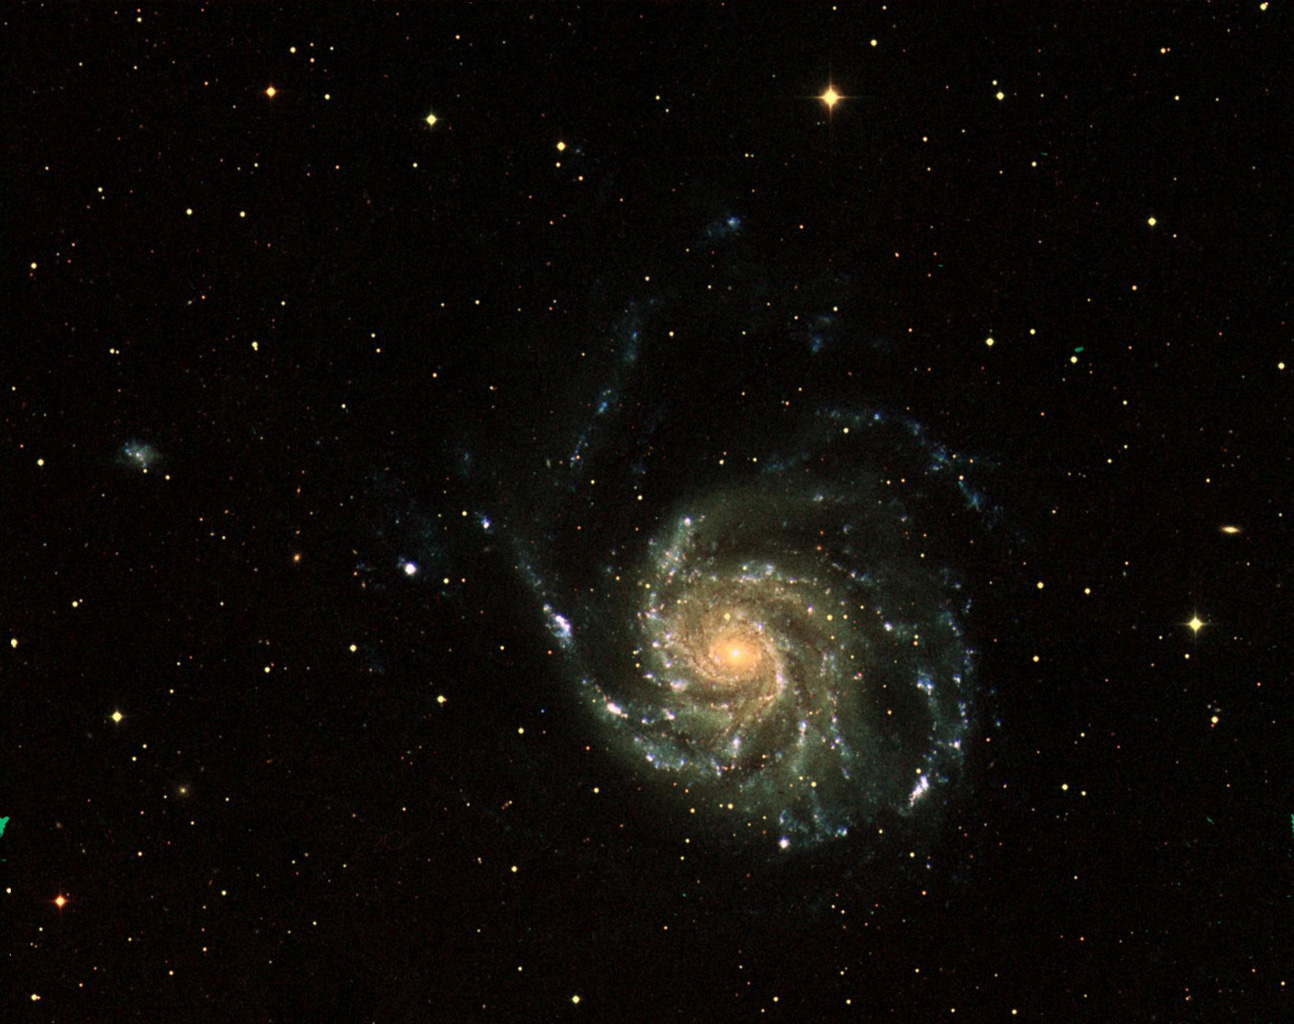 This three-color image of galaxy M101 was taken by NASA's Galaxy Evolution Explorer on June 20, 2003. The far ultraviolet emissions are shown in blue, the near ultraviolet emissions are green, and the red emissions, taken from NASA's Digital Sky Survey.